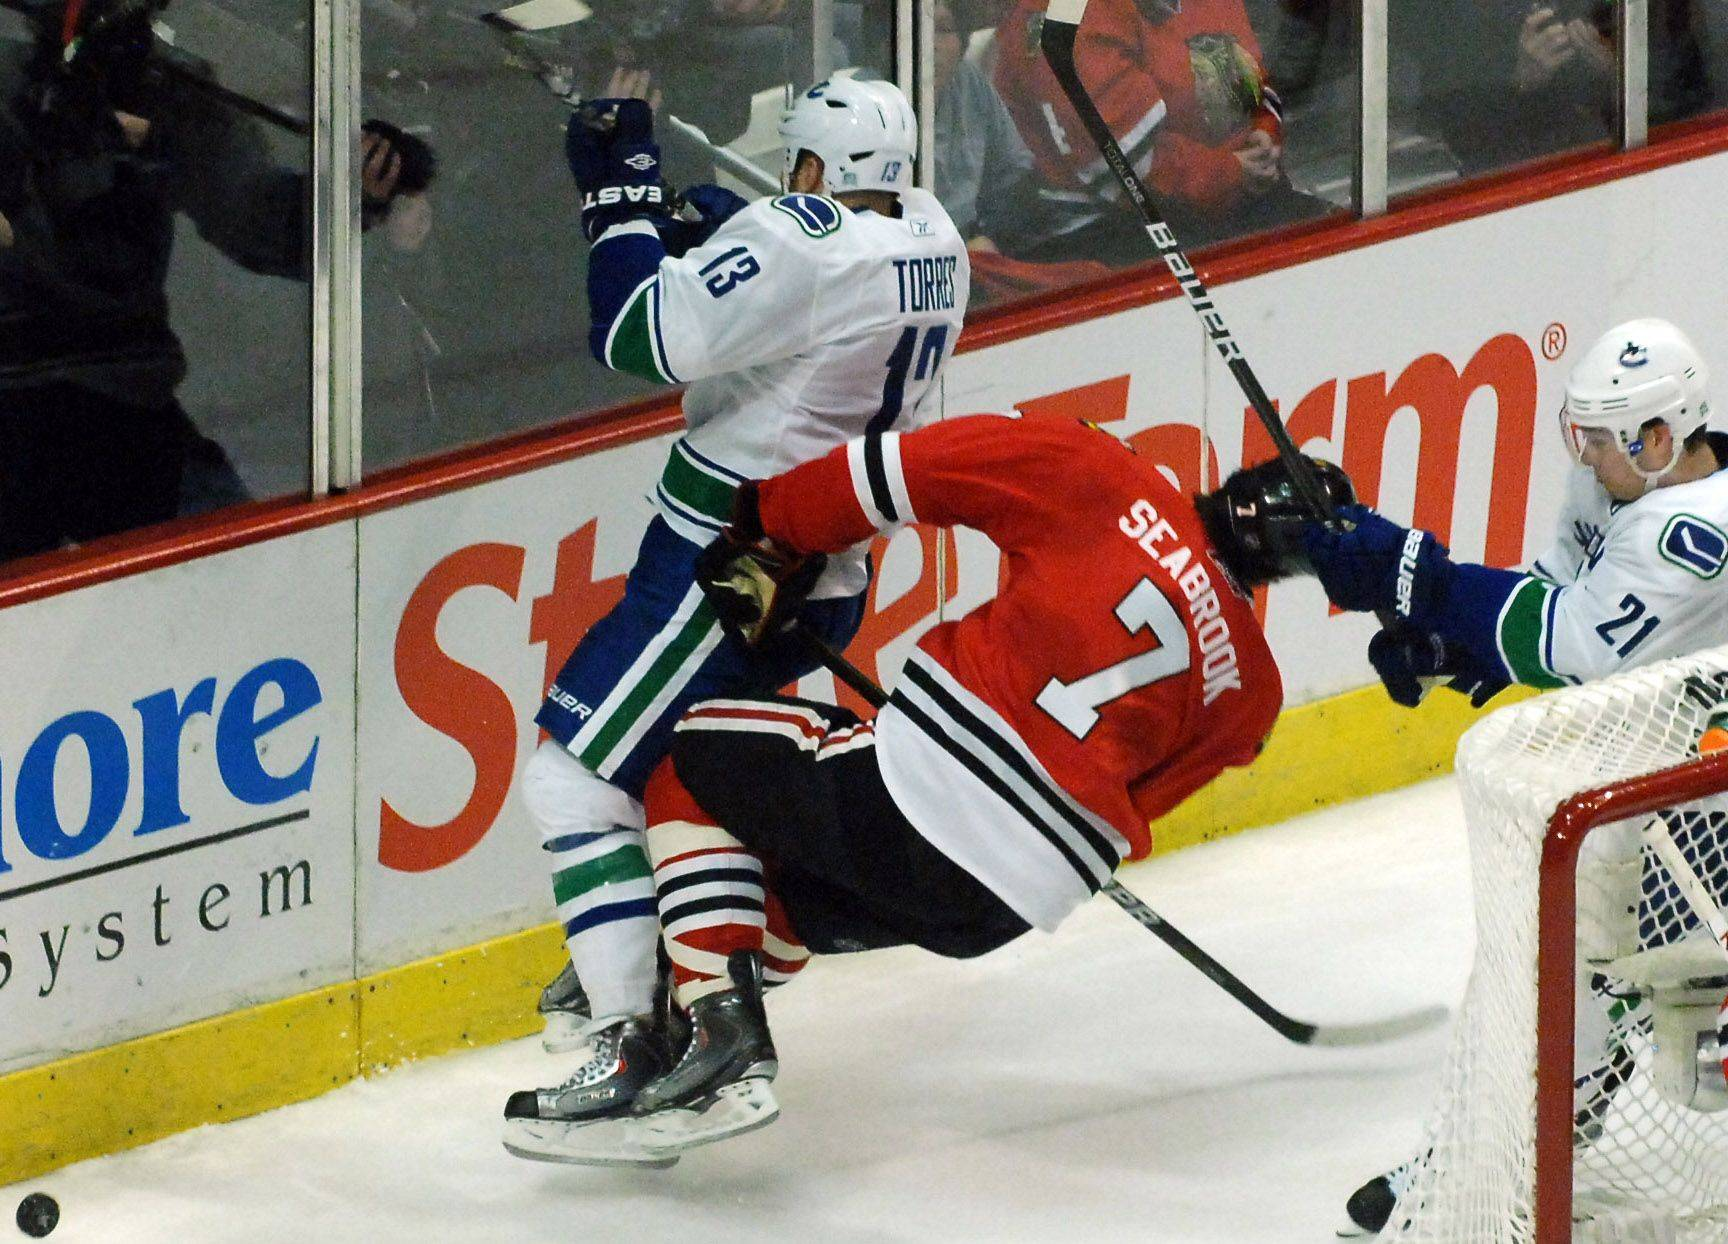 Vancouver Canucks left wing Raffi Torres No. 13 got a 2-minute penalty for hitting Brent Seabrook during Game 3 in Chicago. The NHL didn't suspend Torres for the hit.